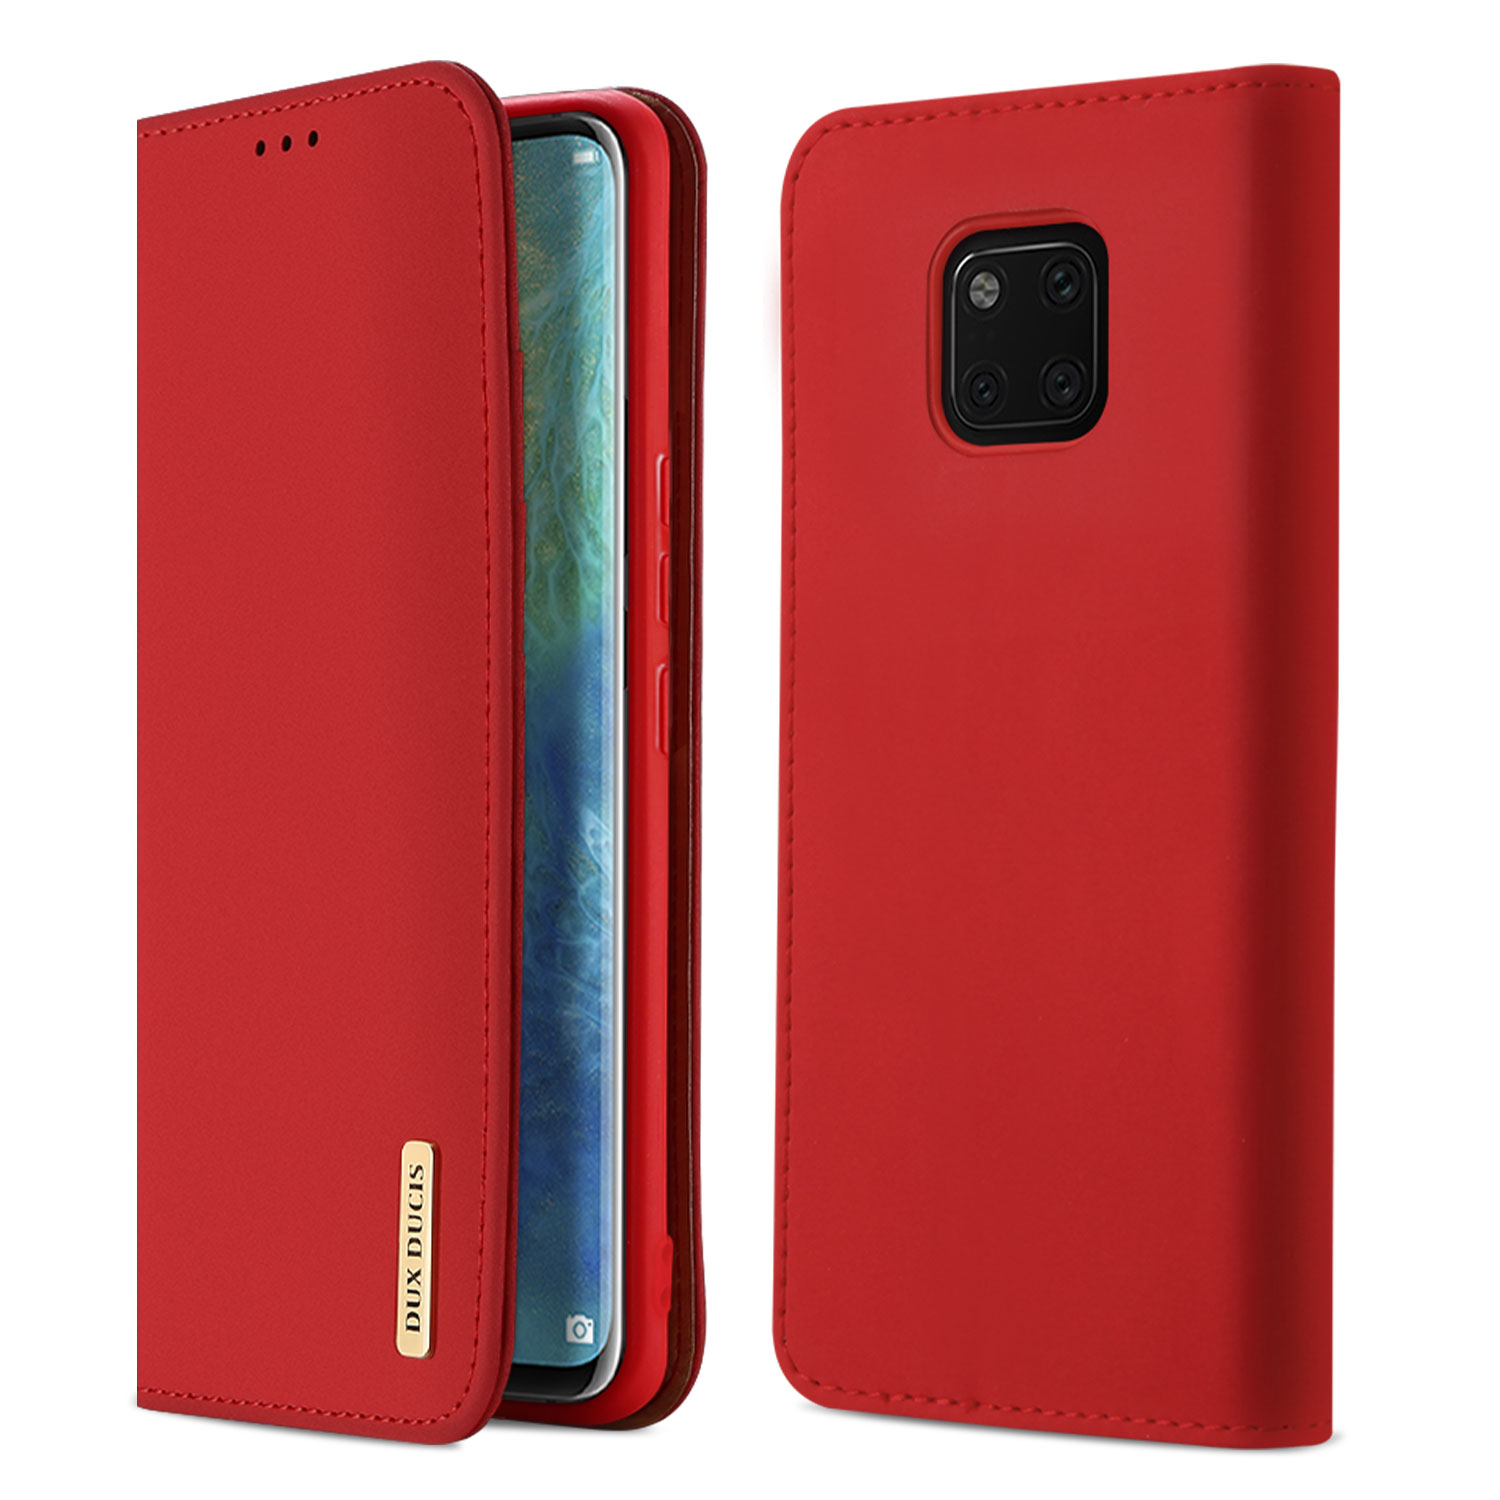 DUX DUCIS For Huawei MATE 20 pro Luxury Genuine Leather Magnetic Flip Cover Full Protective Case with Bracket Card Slot red_Huawei MATE 20 pro